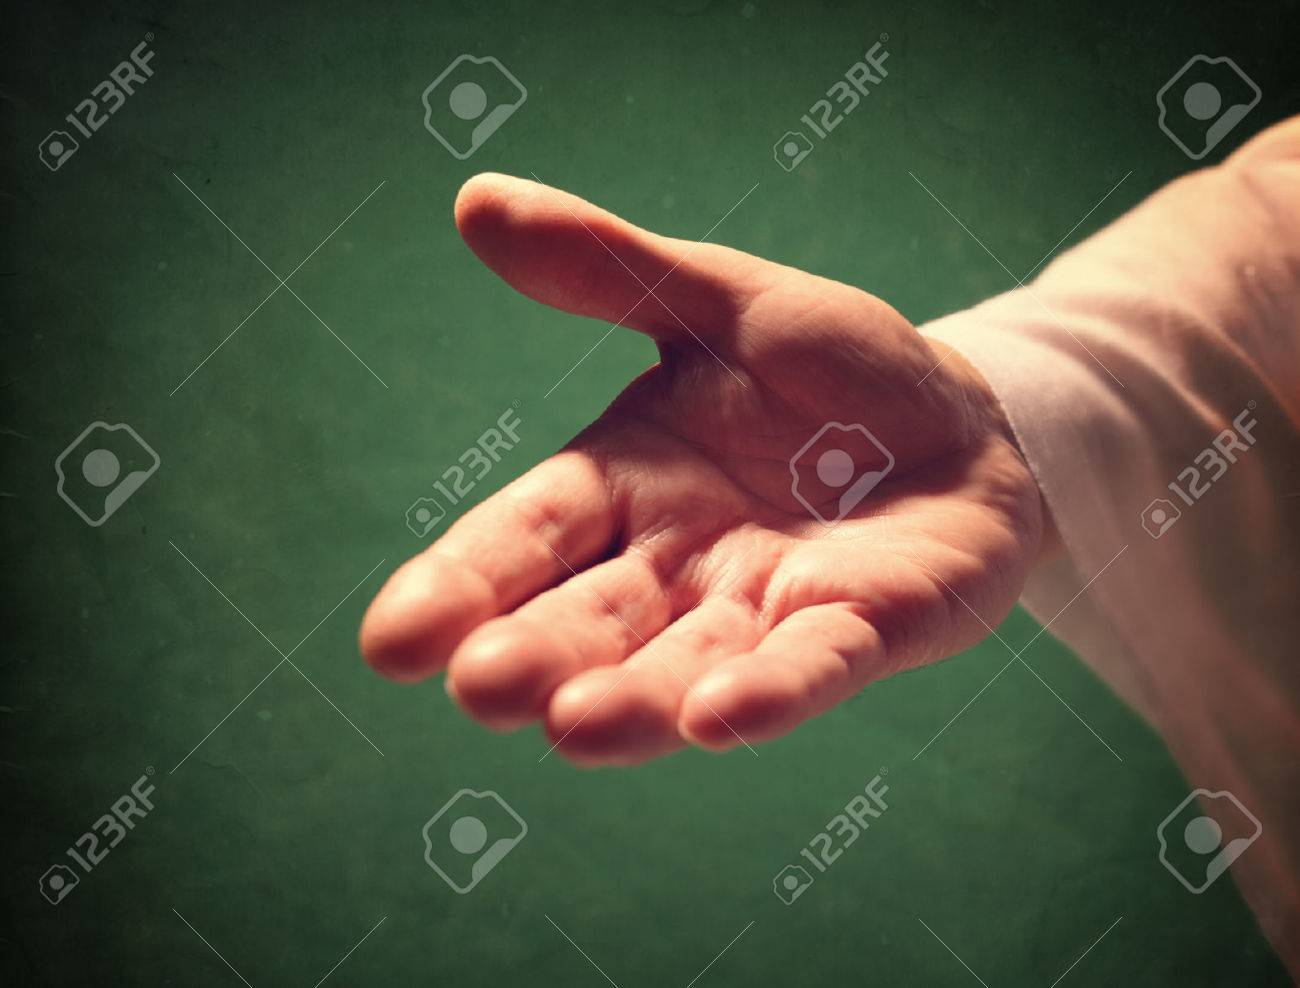 Gods Hand Reaching Out Religion Salvation Forgiveness Assistance And Love Concept Stock